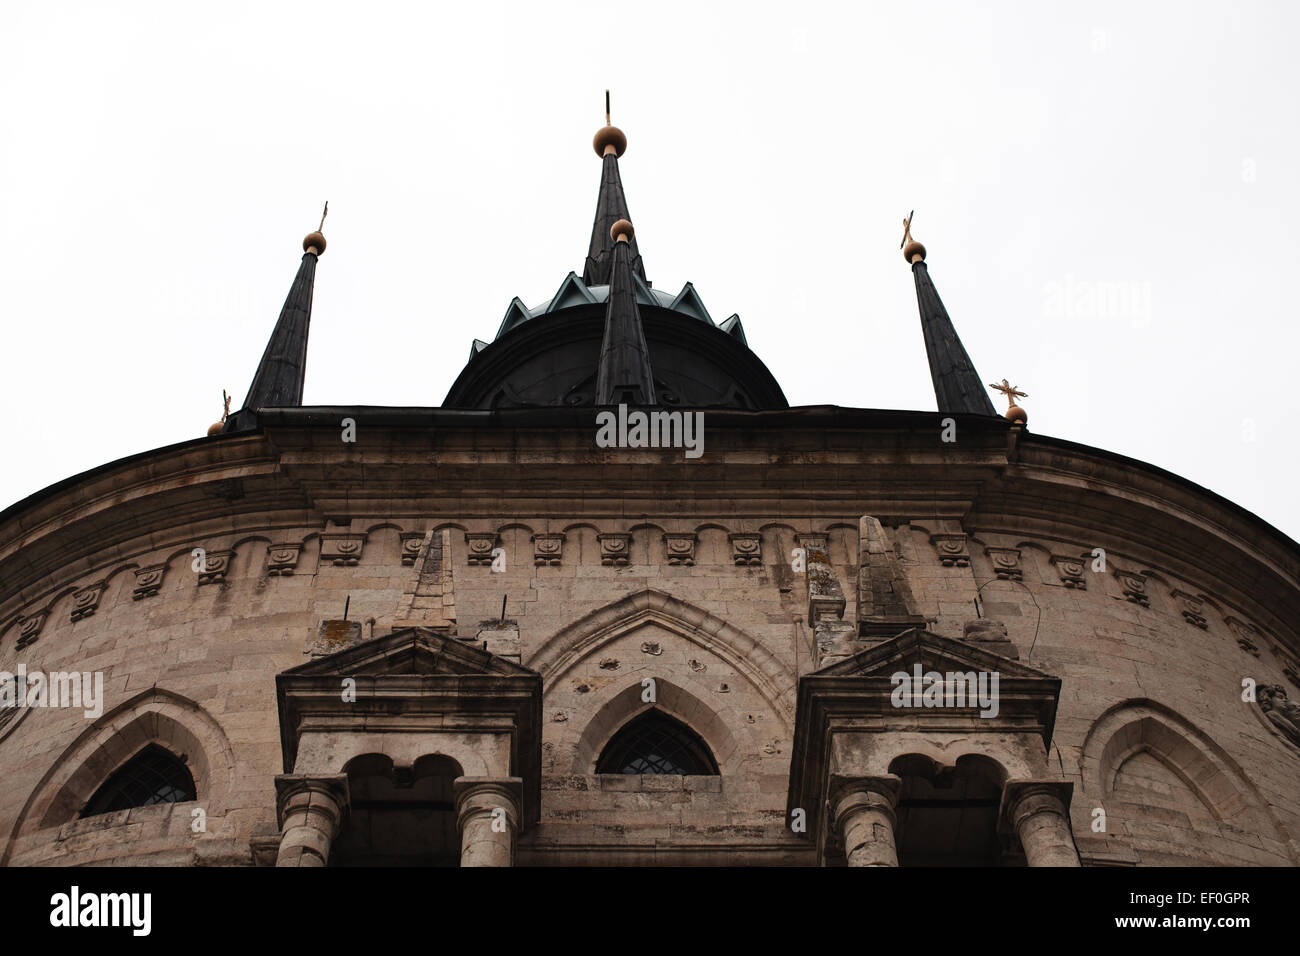 The Spiers On Roof Of A Gothic Church